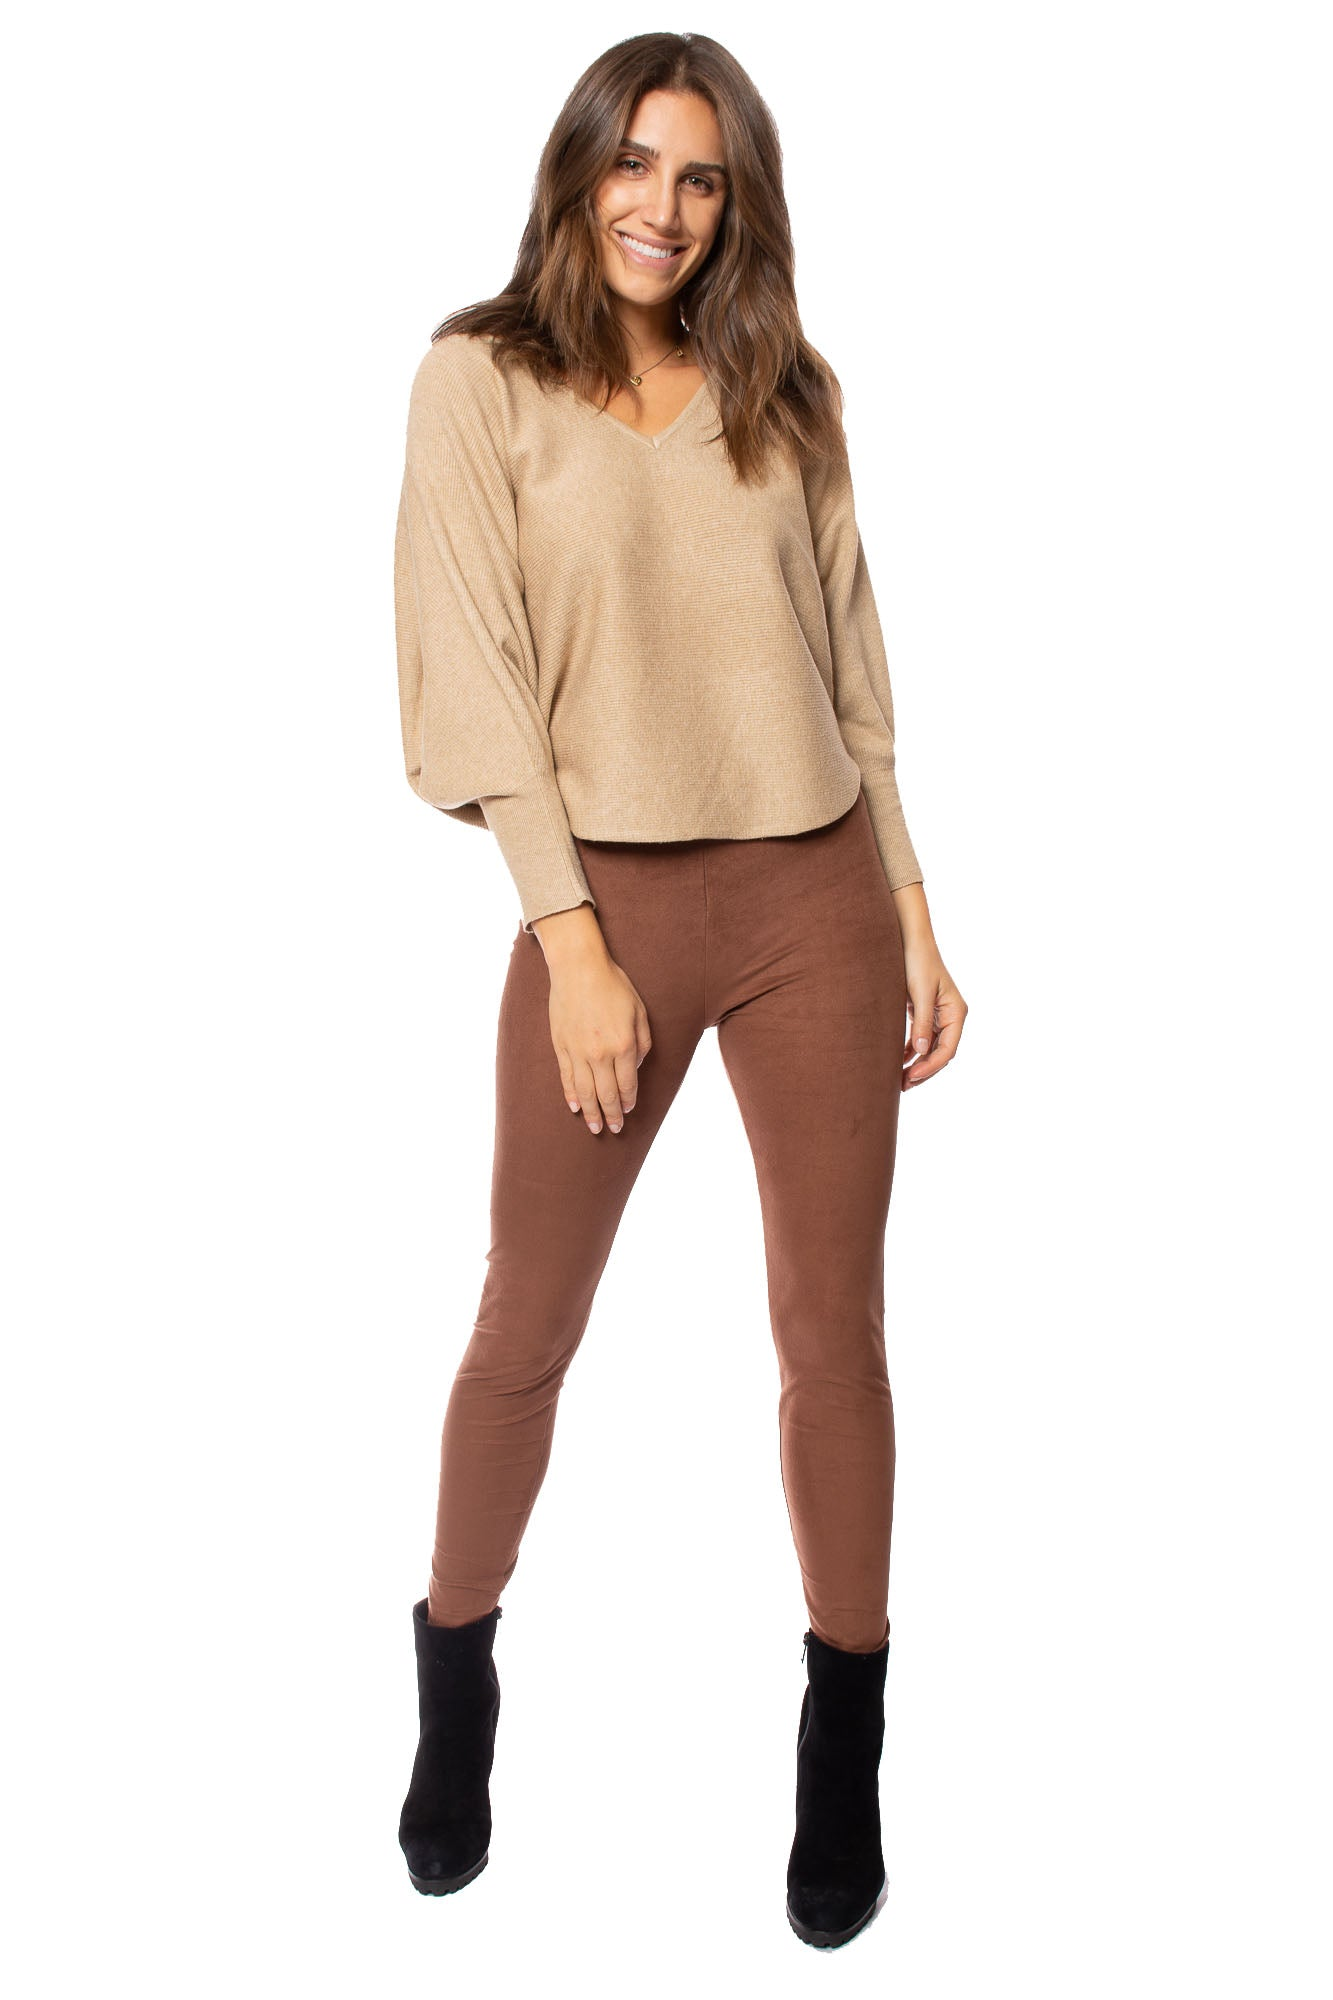 Kerisma - Dolman Deep V Neck Ribbed Sweater (G550V, Camel)